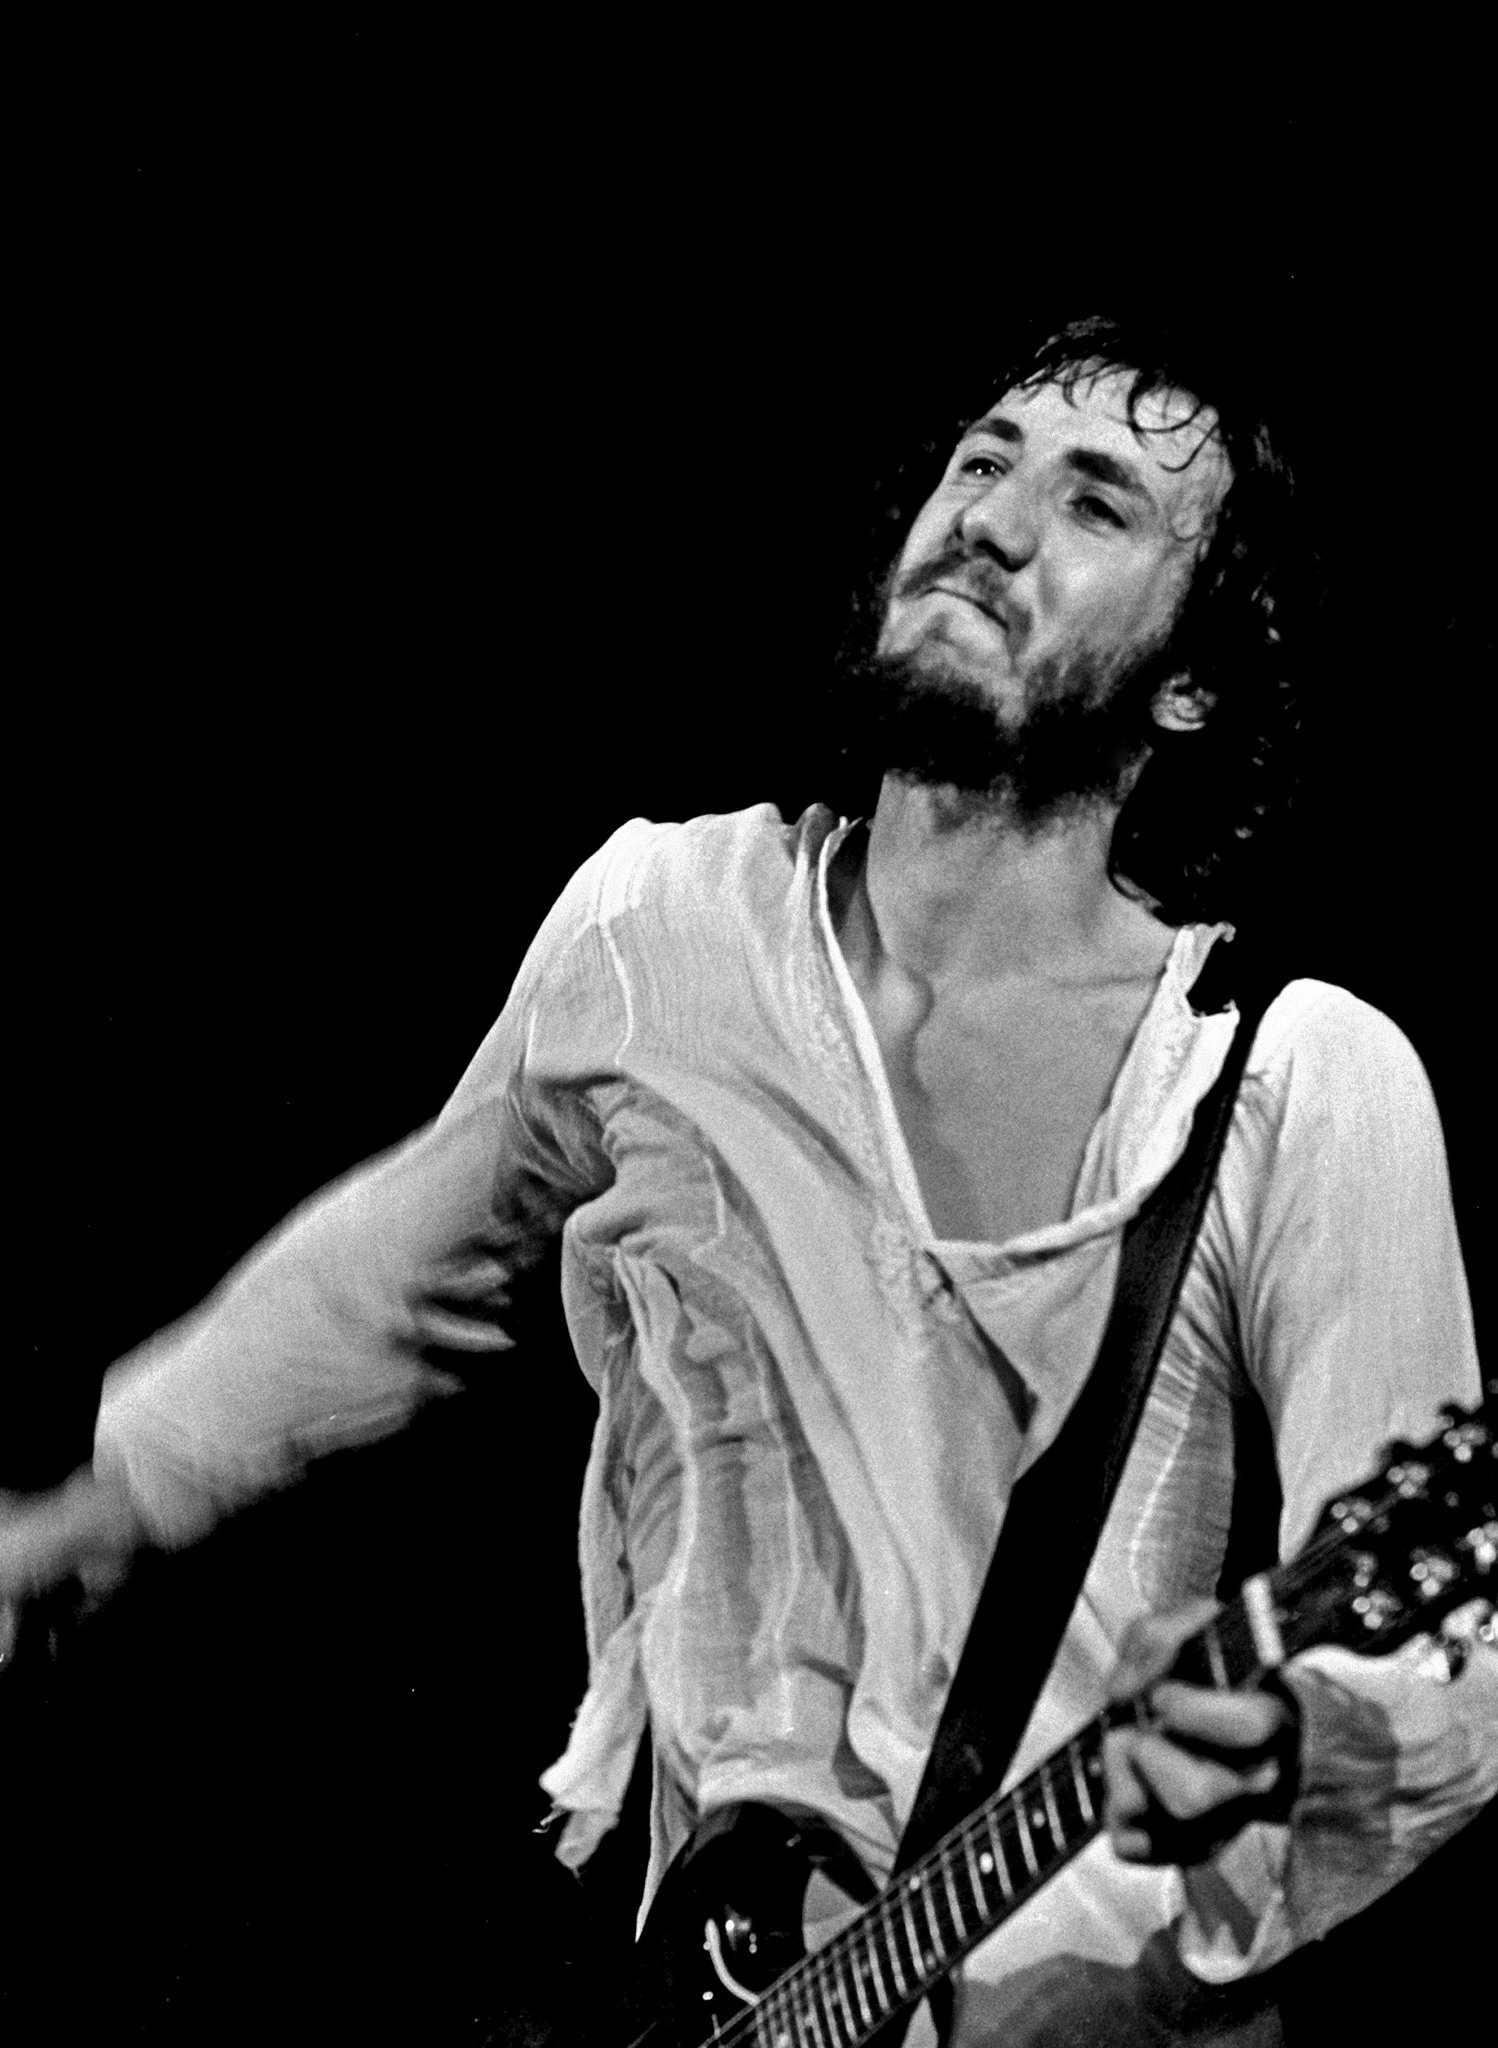 Happy 72nd Birthday to PETE TOWNSHEND (THE WHO), one of the greatest guitarists and songwriters ever in rock.